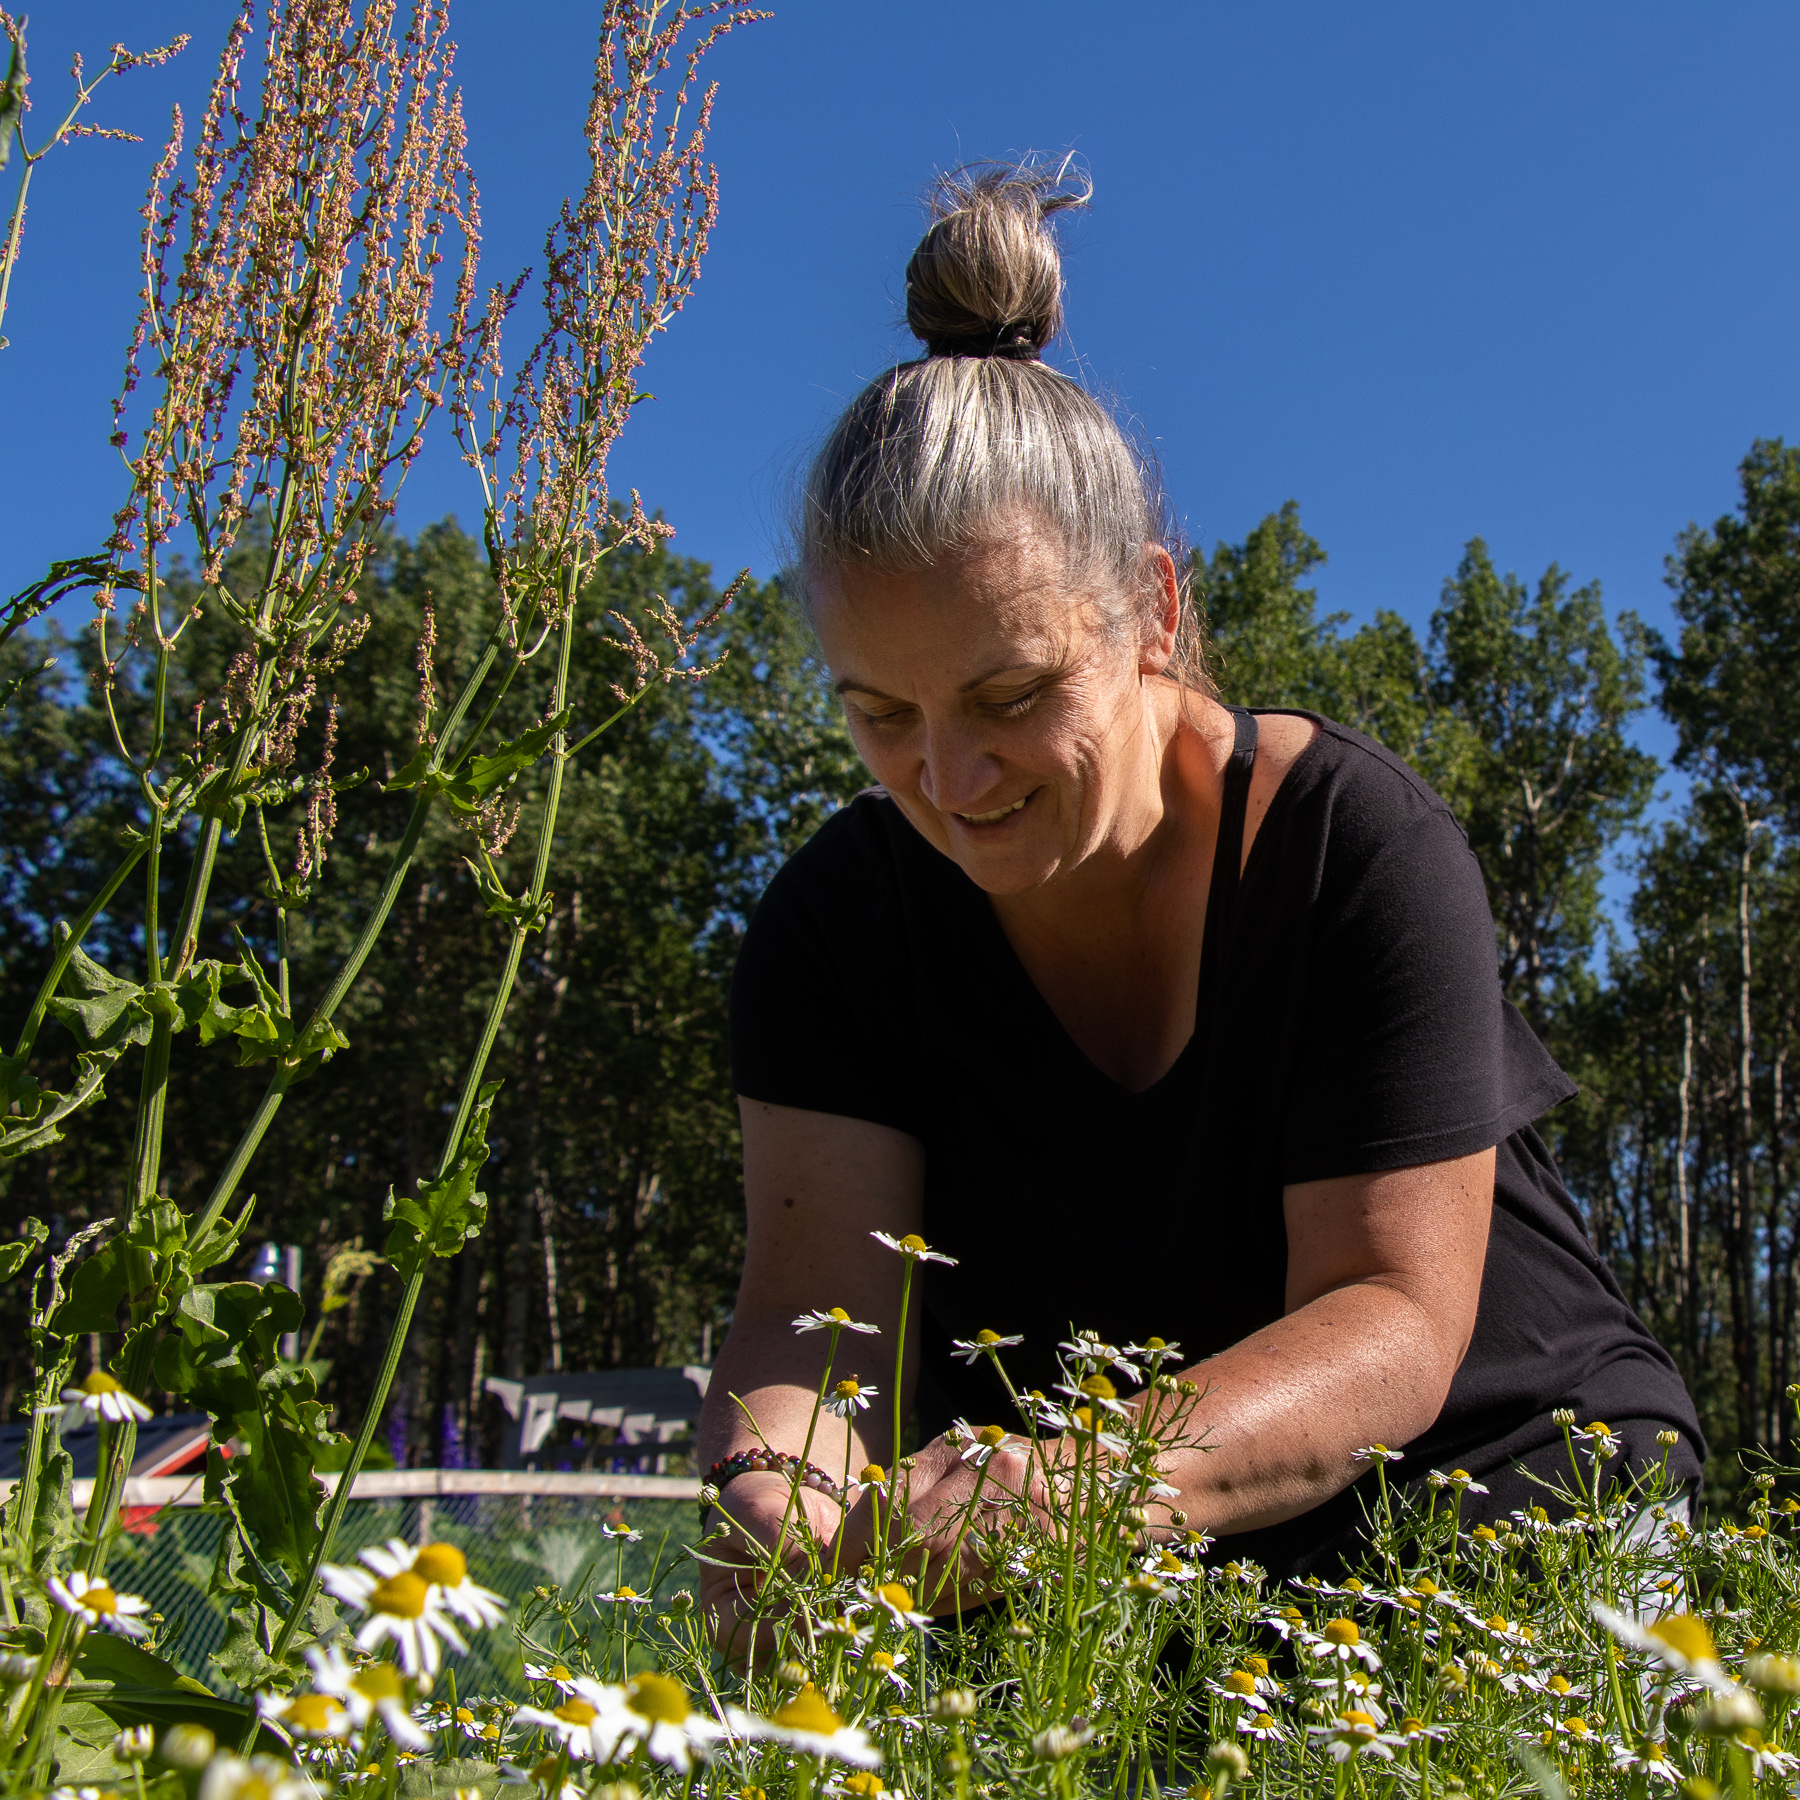 Nadine picks chamomile flowers. From this she makes teas and salves.